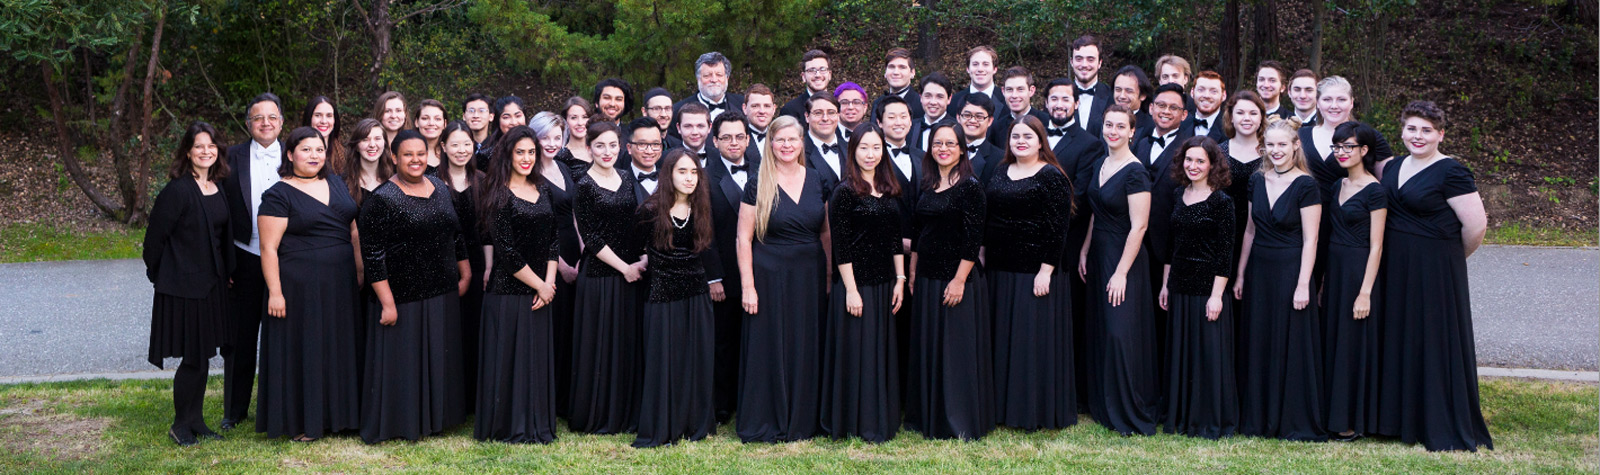 Formal Choral Group